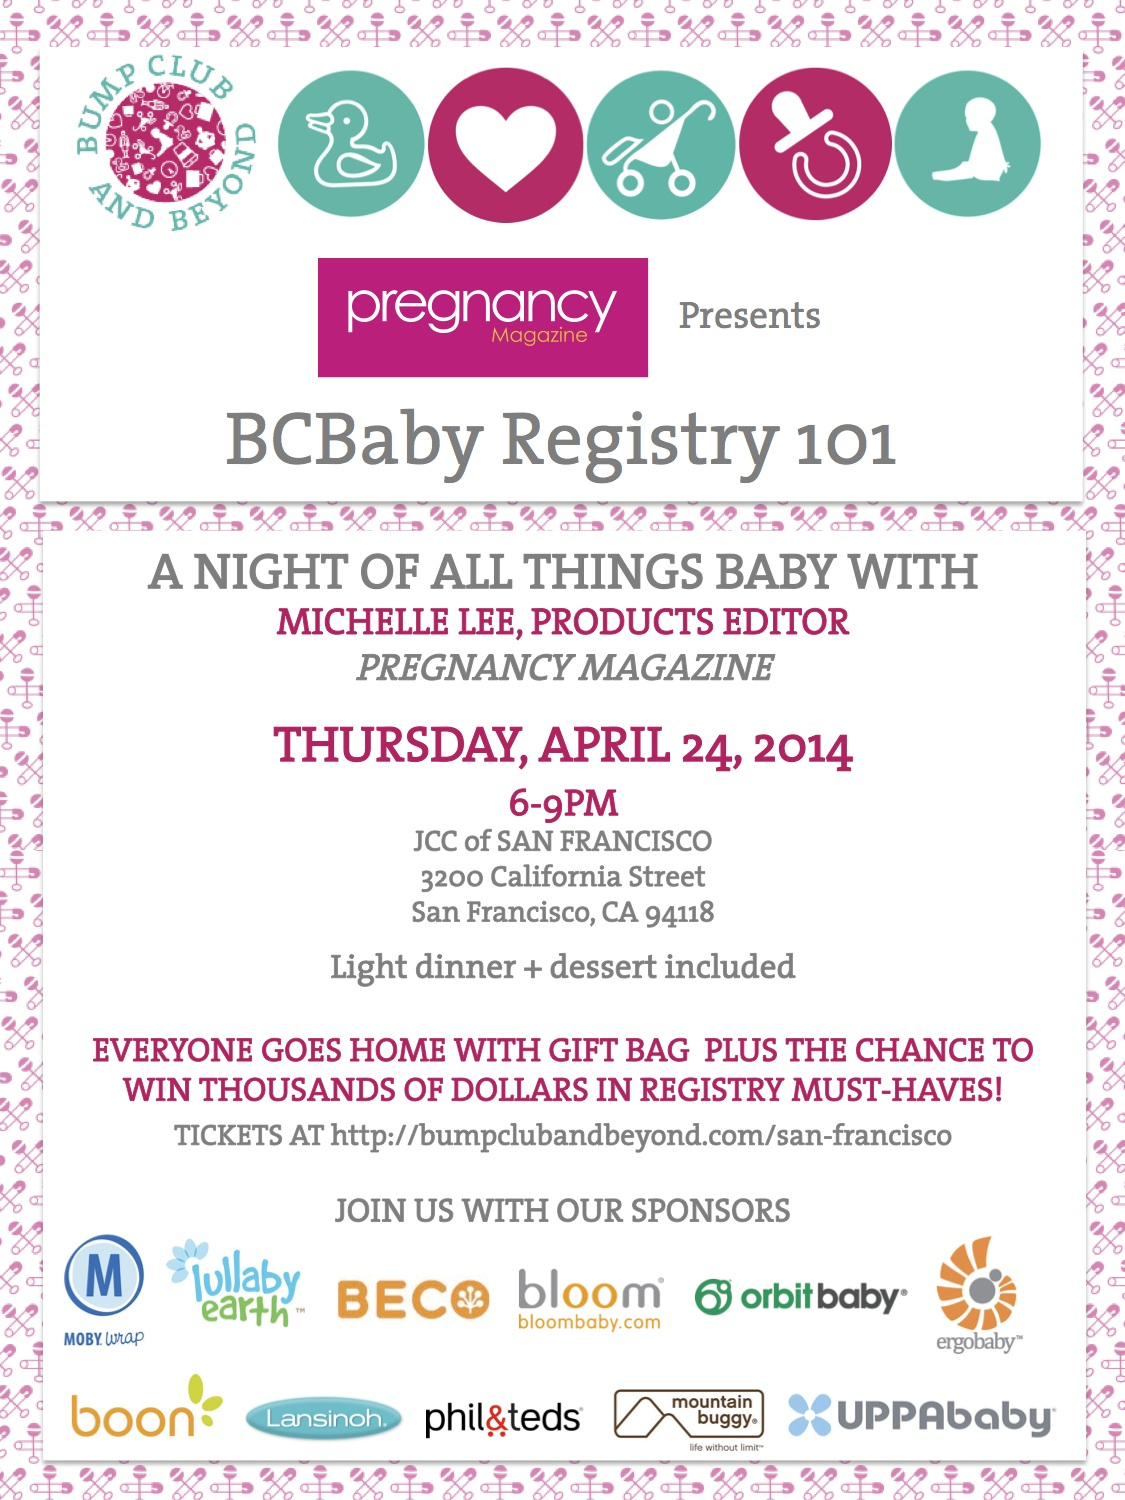 PREGNANCY_MAGAZINE_INVITE_APRIL_2014